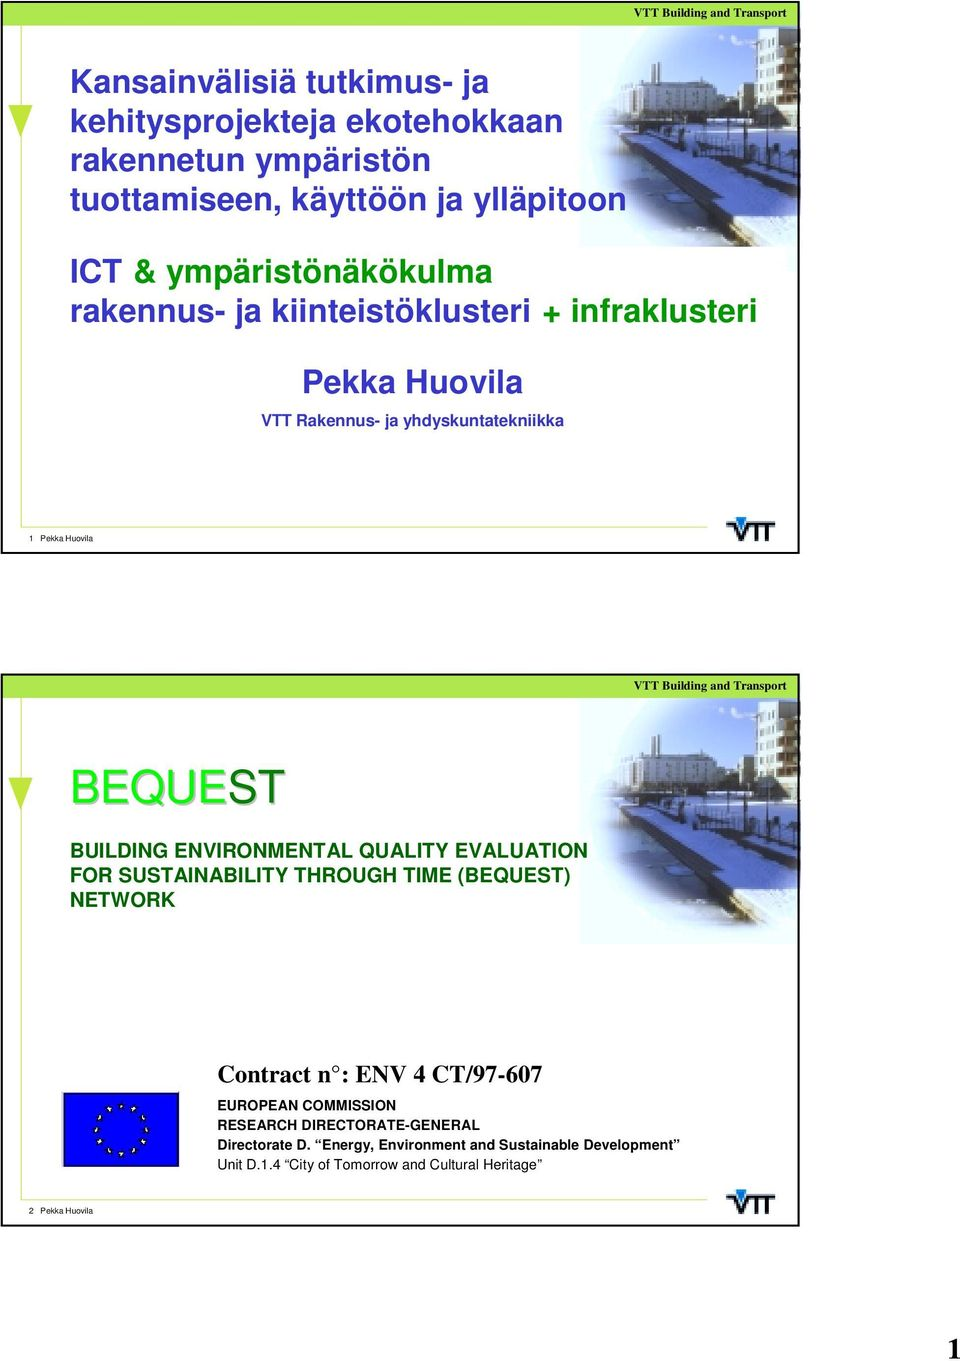 BUILDING ENVIRONMENTAL QUALITY EVALUATION FOR SUSTAINABILITY THROUGH TIME (BEQUEST) NETWORK Contract n : ENV 4 CT/97-607 EUROPEAN COMMISSION